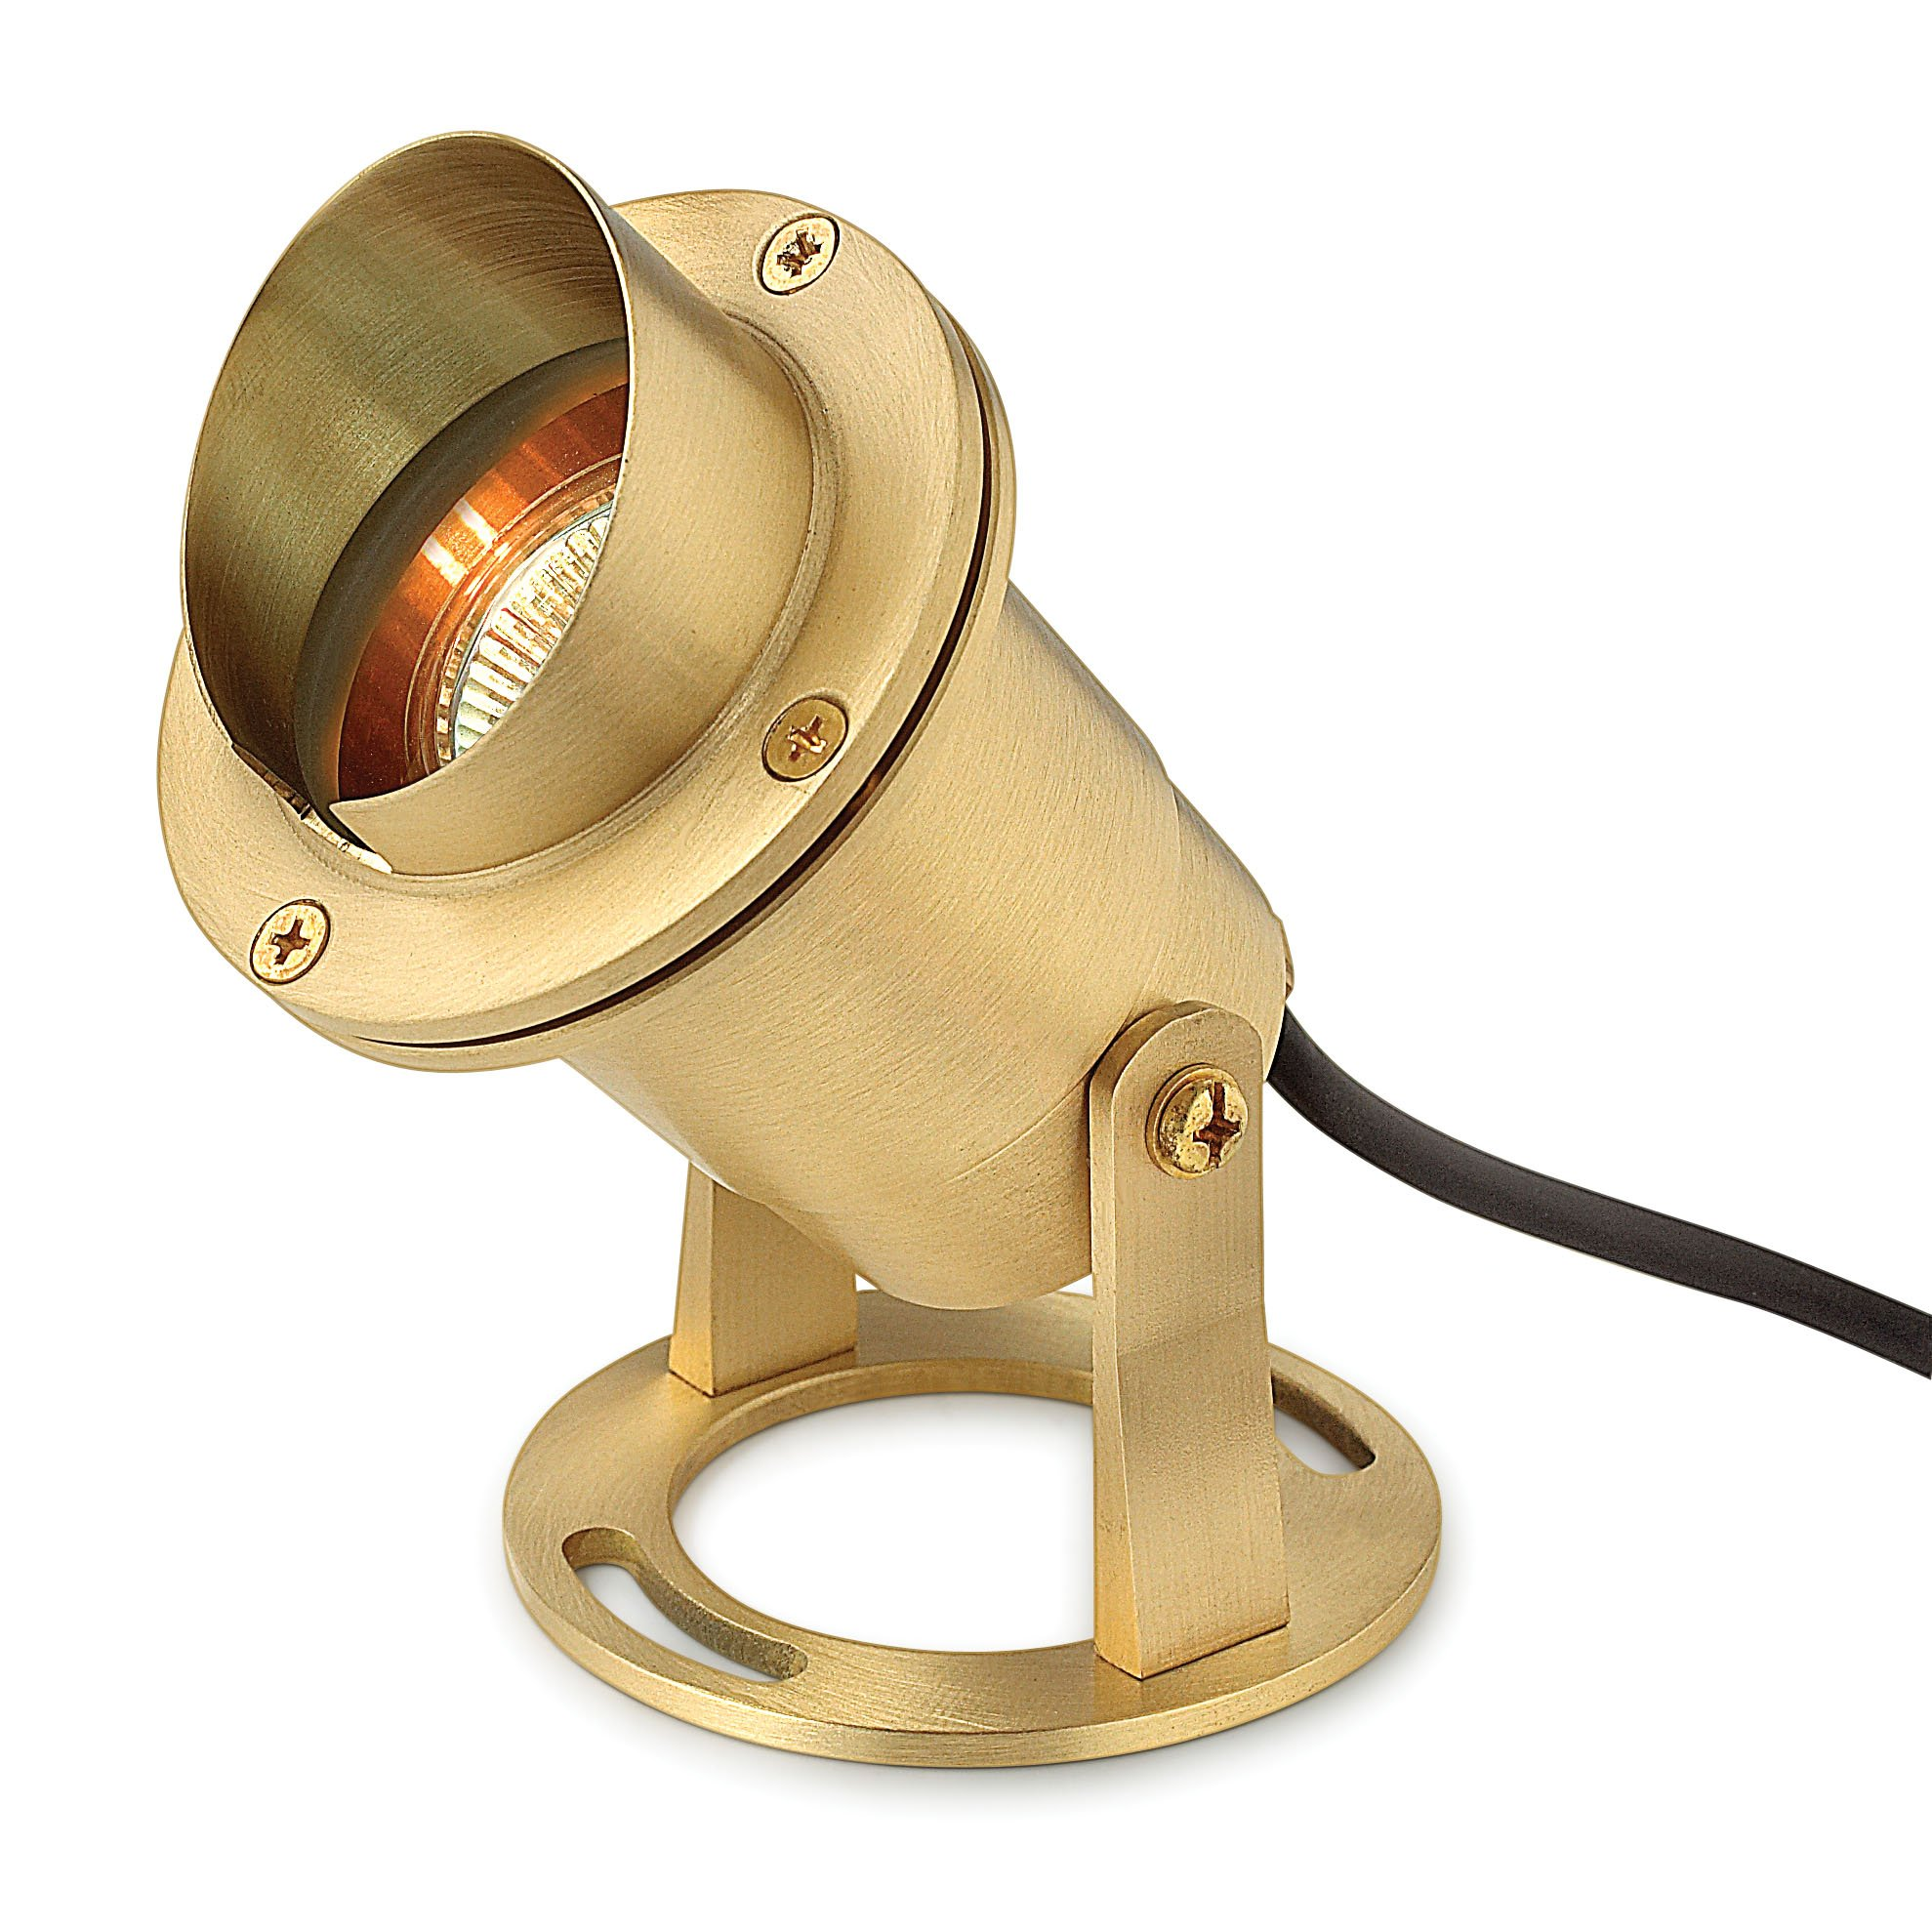 Hinkley Lighting 1539BS Solid Brass Submersible MR16 50 Watt Maximum Pond Light, Bronze